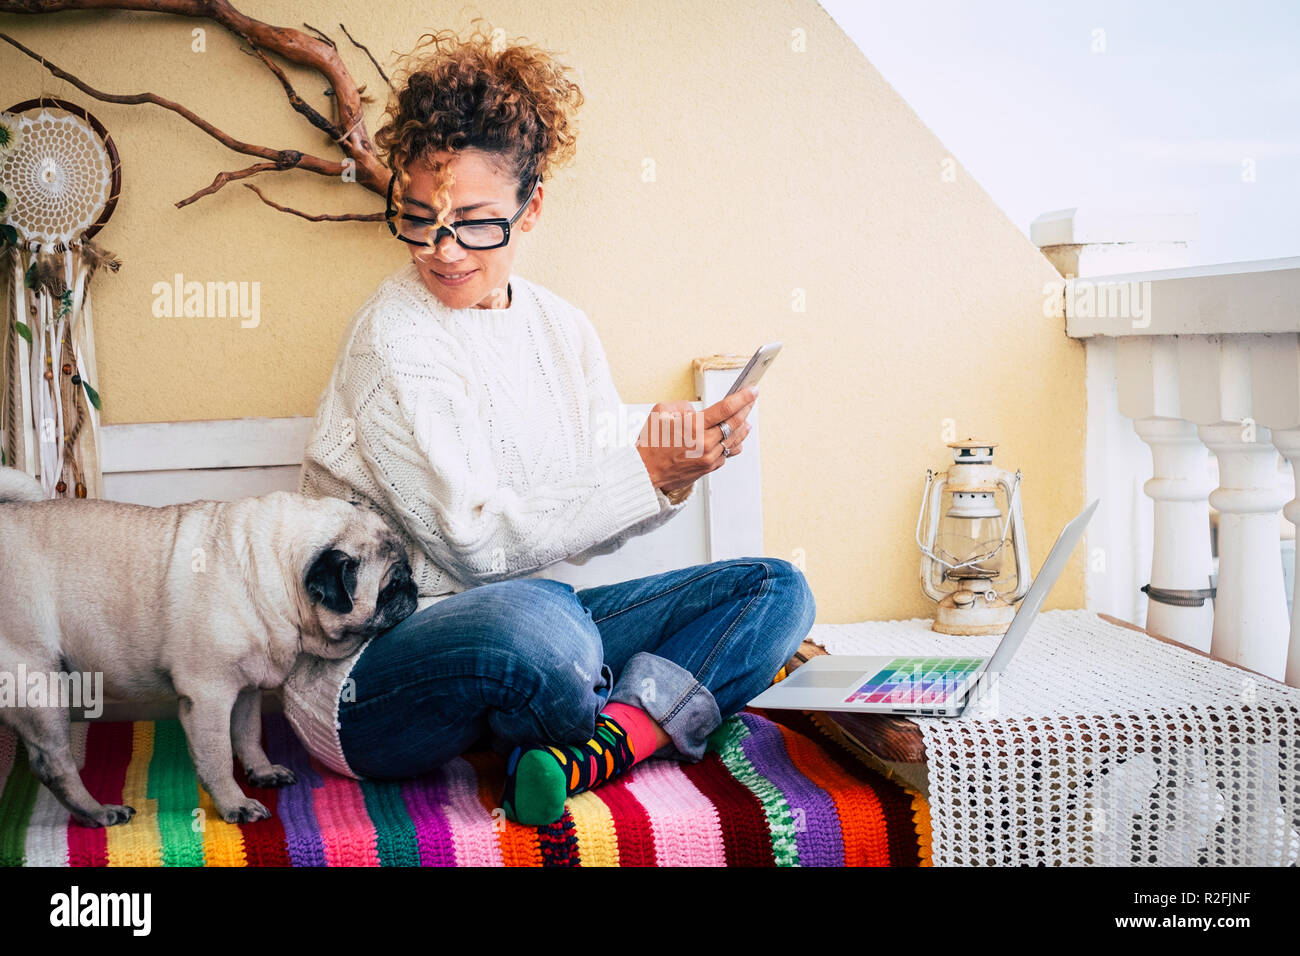 Happy alternative young cheerful woman warking at home with a new business way. sitting on a bench outdoor at home with best friend old pug together. colorful bench and lifestyle. laptop and phone to communicate and internet - Stock Image